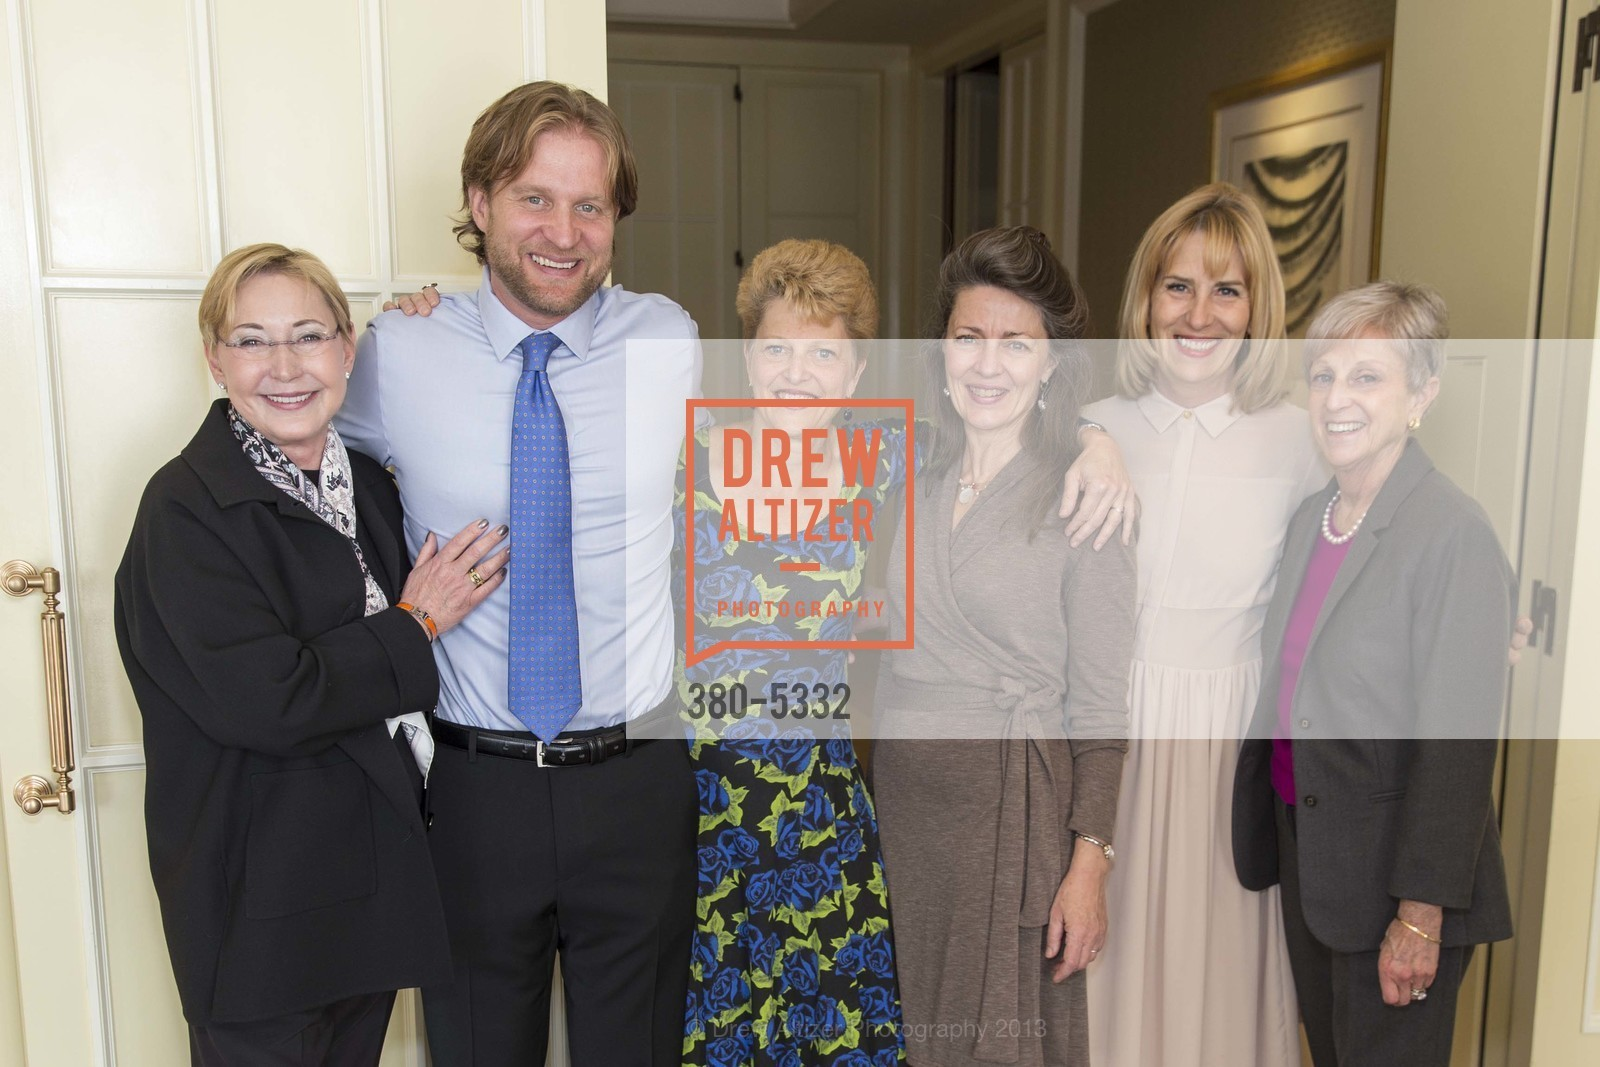 Diana Starcher, Peter Frederich, Carey Perloff, Melissa Smith, Ellen Richard, Nancy Livingston, Photo #380-5332